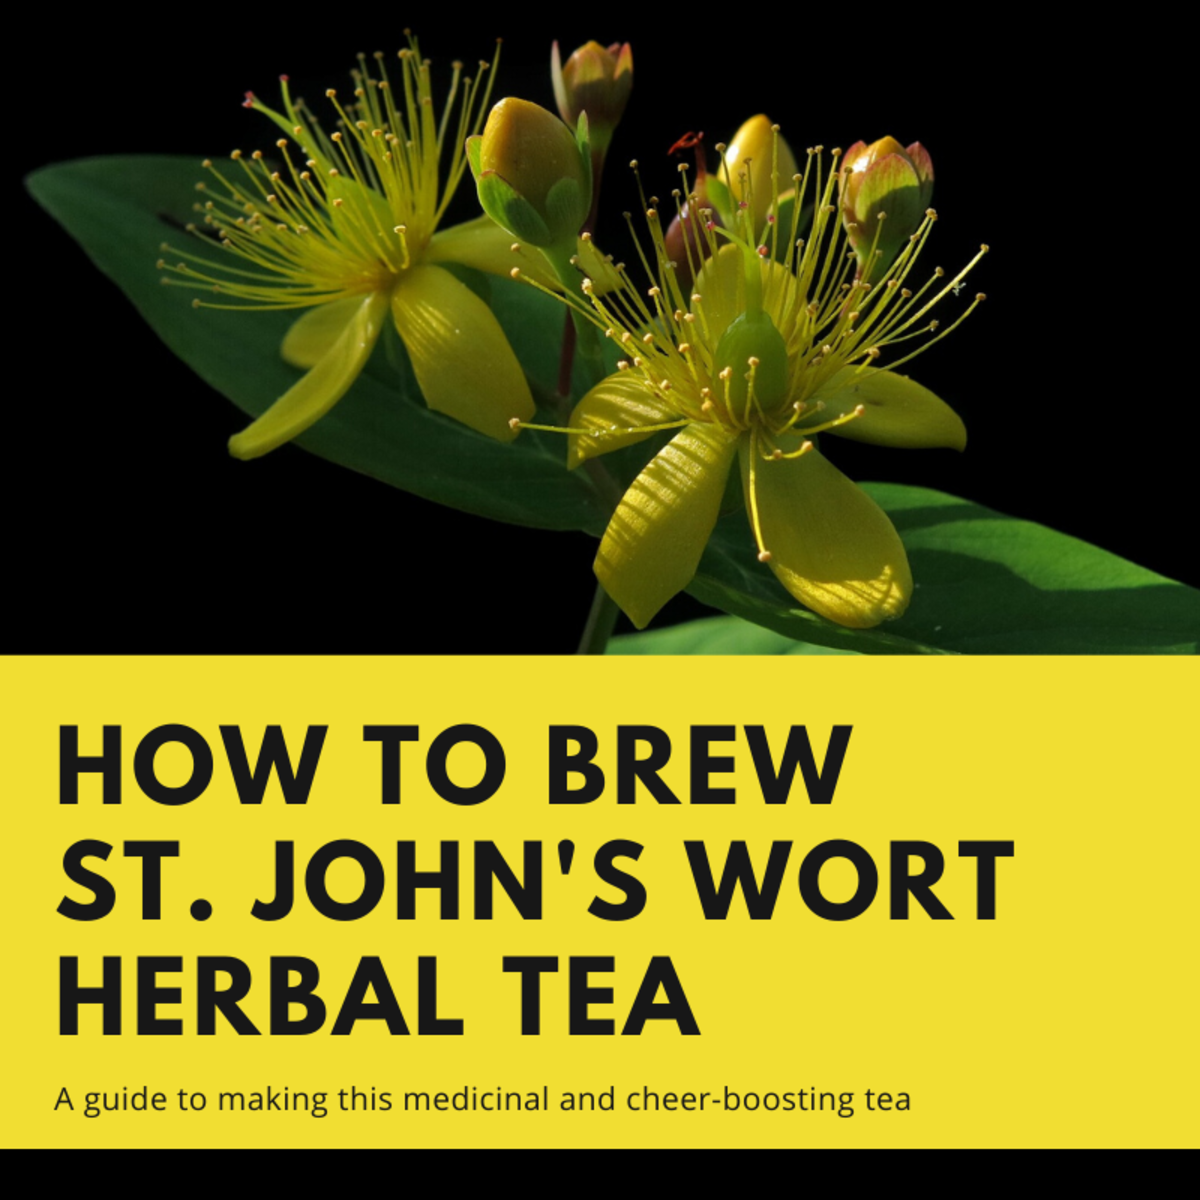 This article will show you how to make herbal tea from St. John's wort.